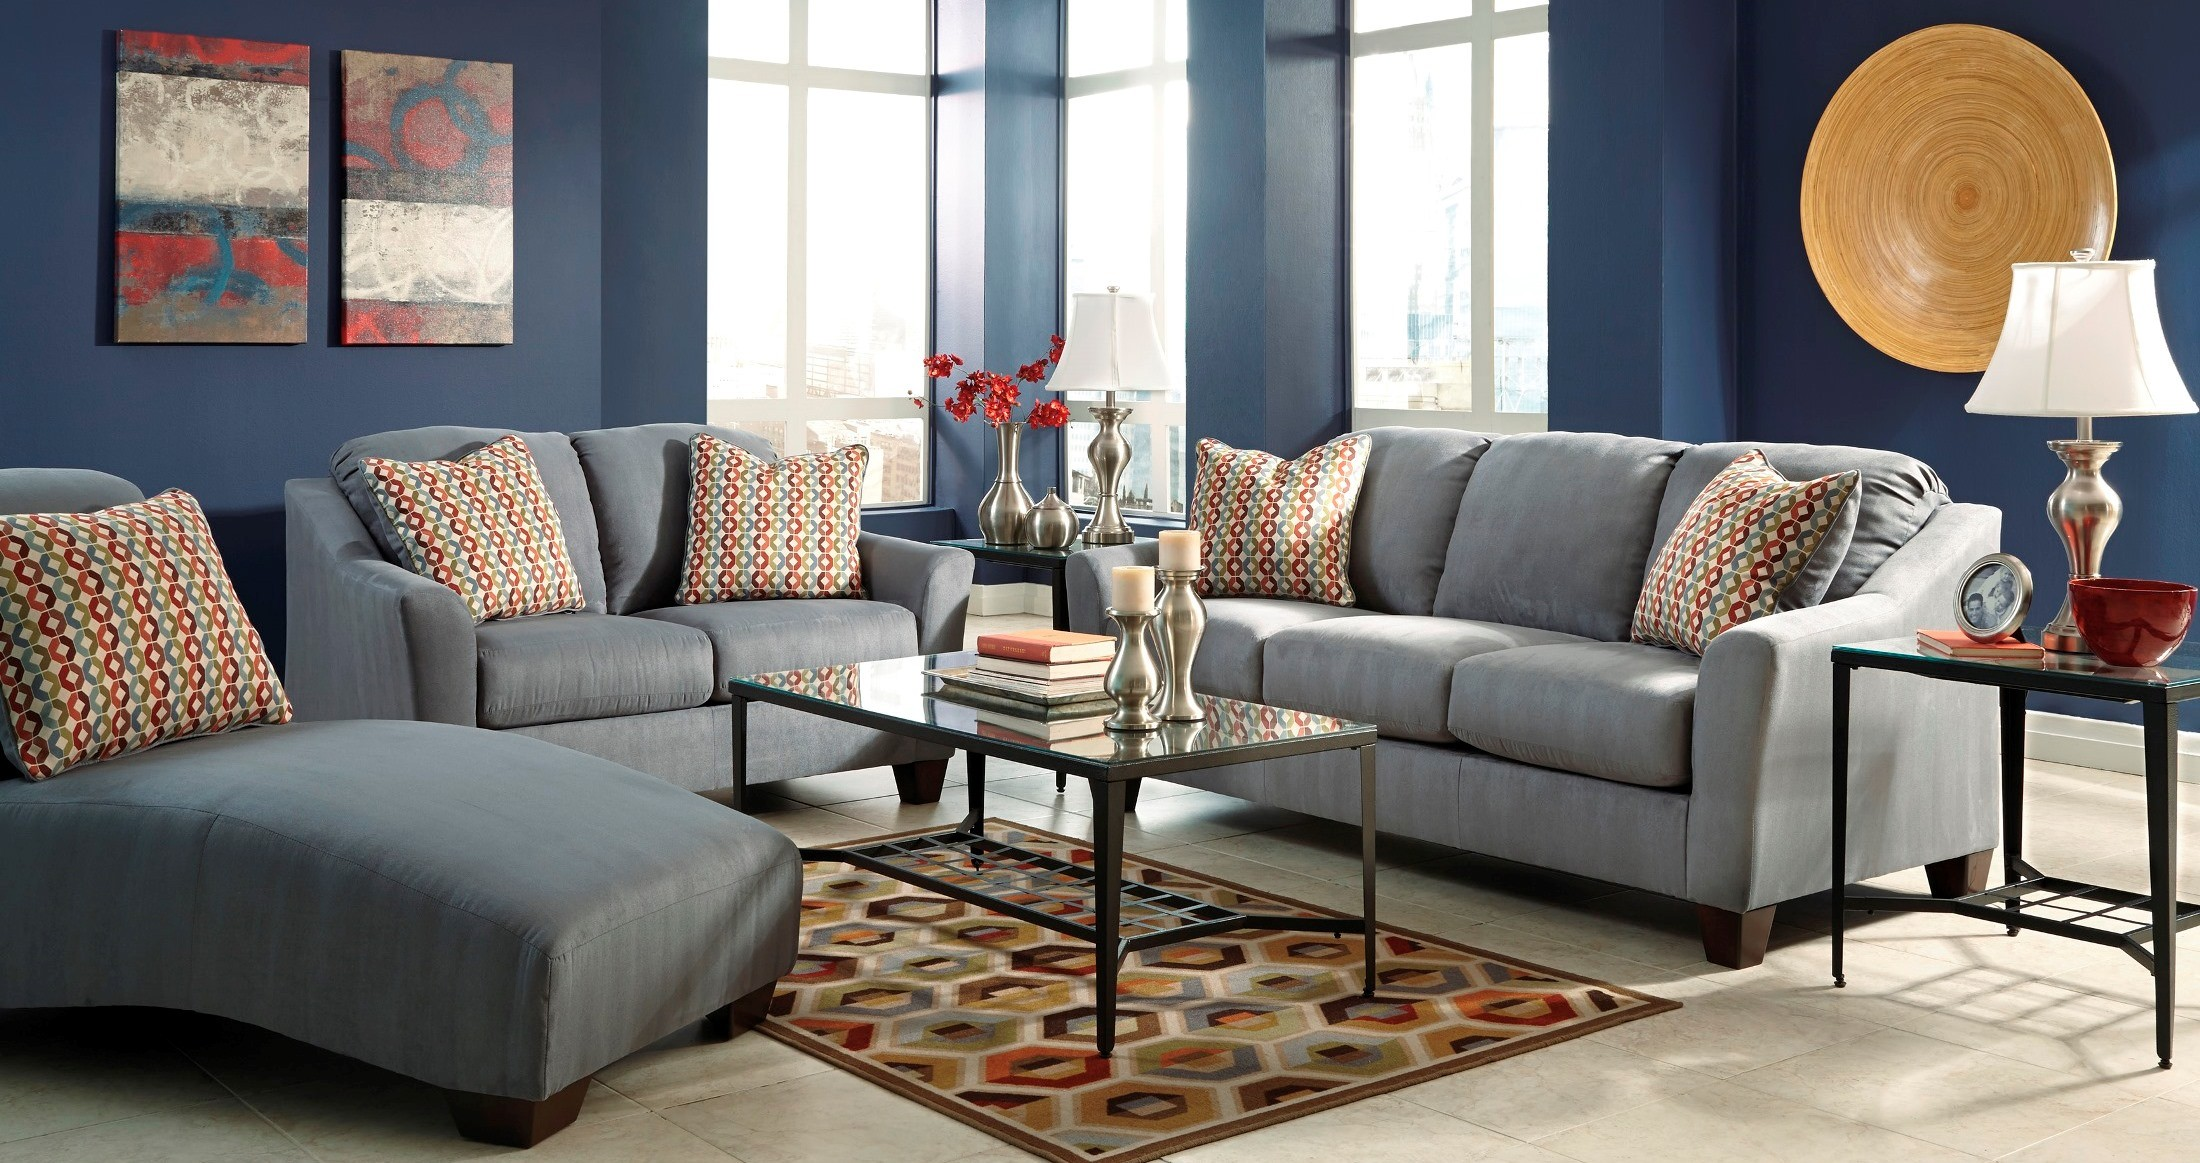 Hannin Lagoon Living Room Set From Ashley 95802 38 35 Coleman Furniture